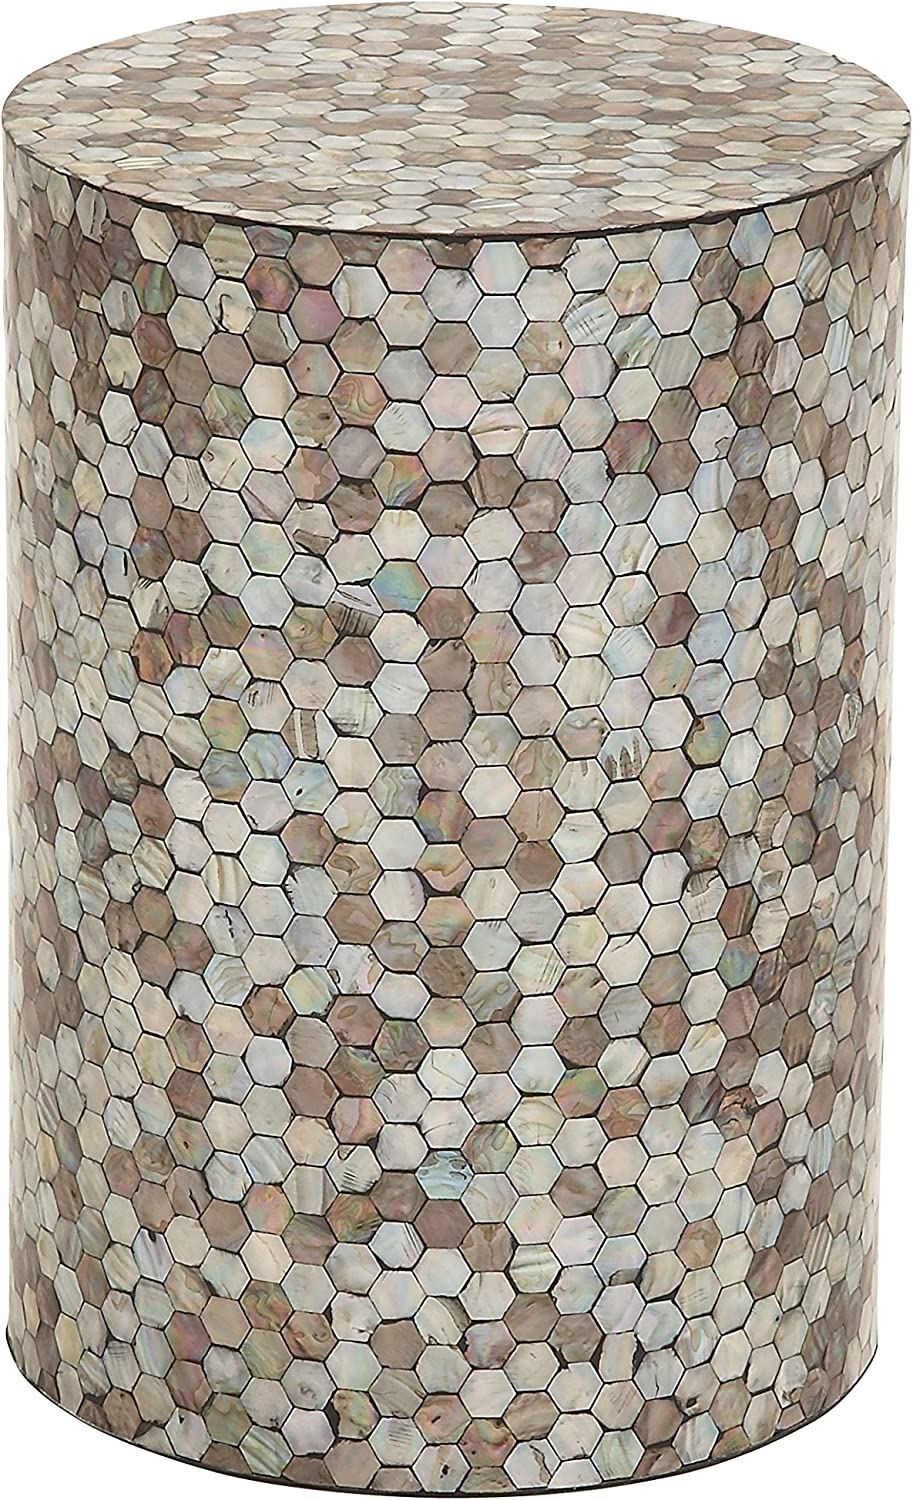 "Deco 79 48985 Small Round End Table with Freshwater Pearl Mussel Shell Inlay, 14"" x 20"""